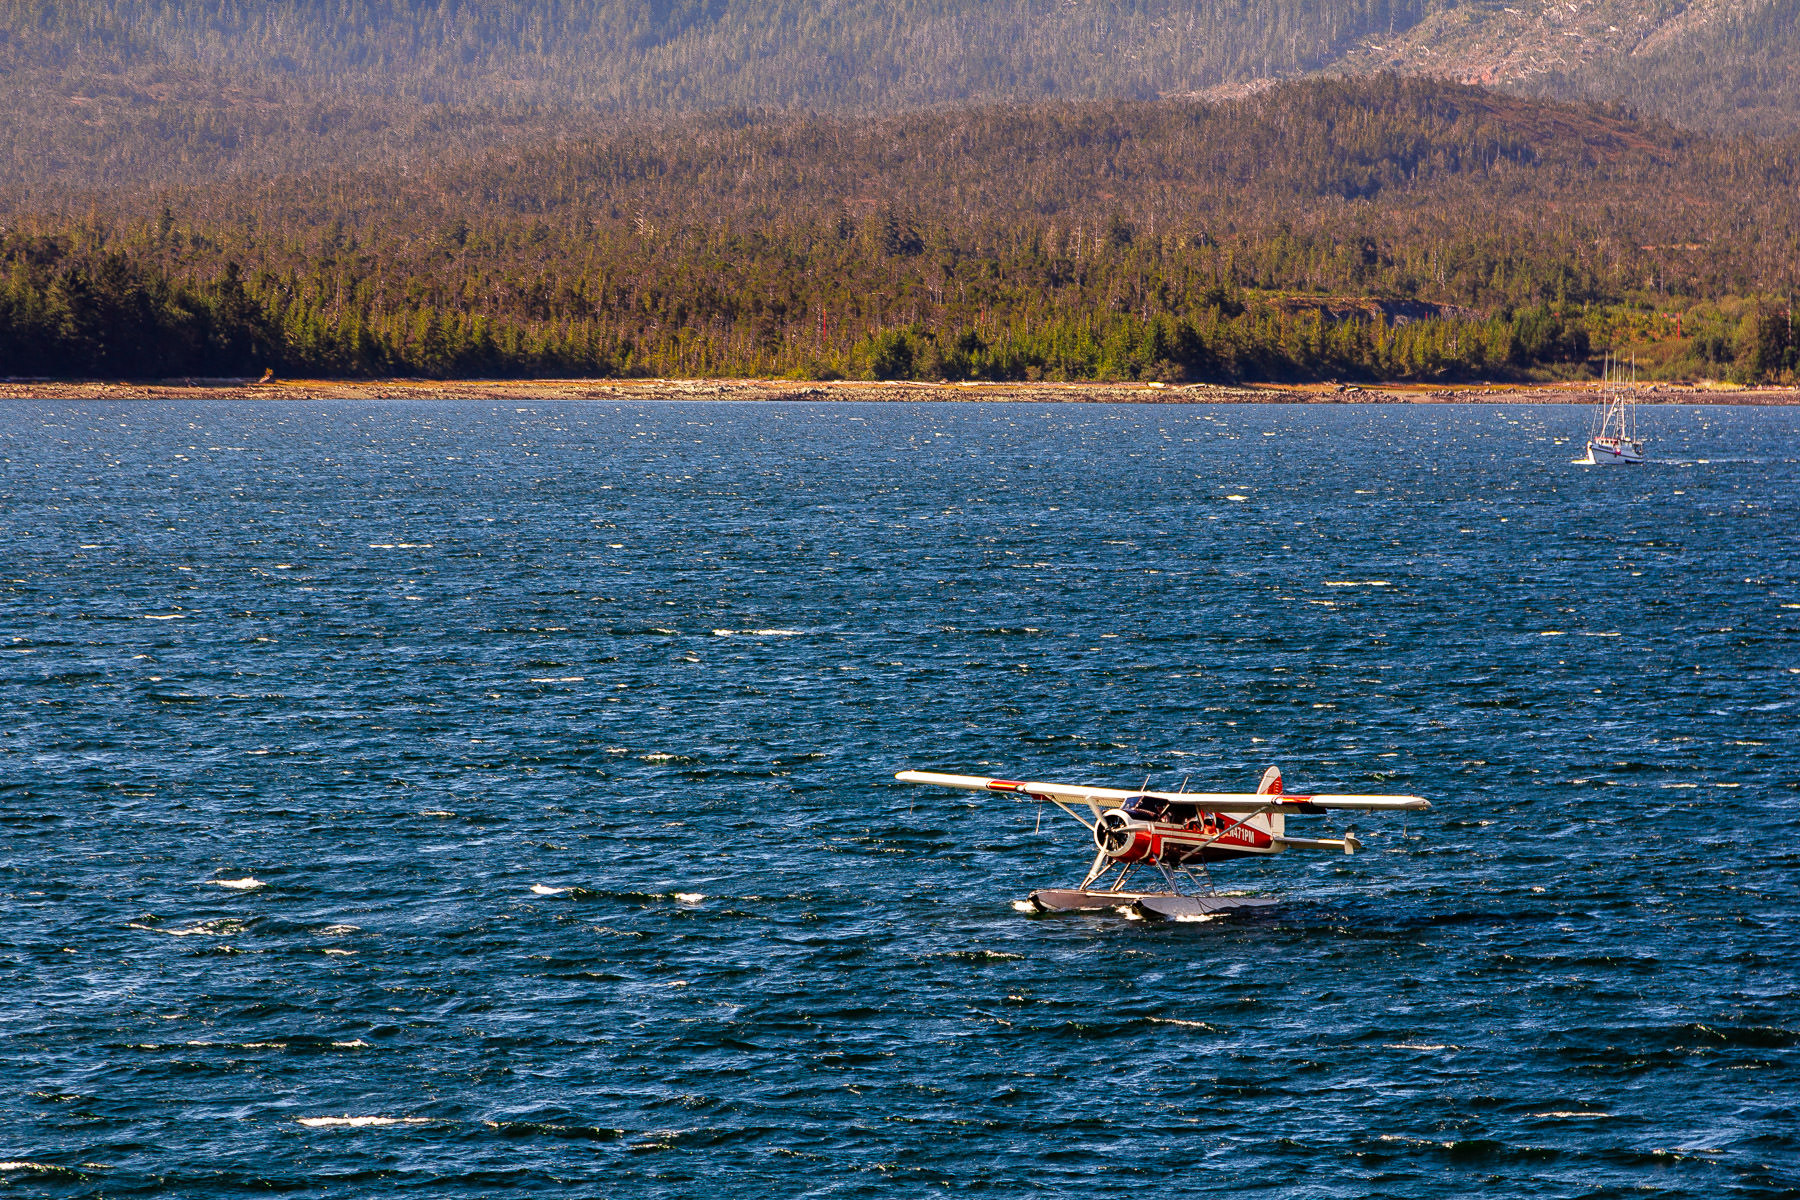 A seaplane prepares to takeoff from the Tongass Narrows in Ketchikan, Alaska.